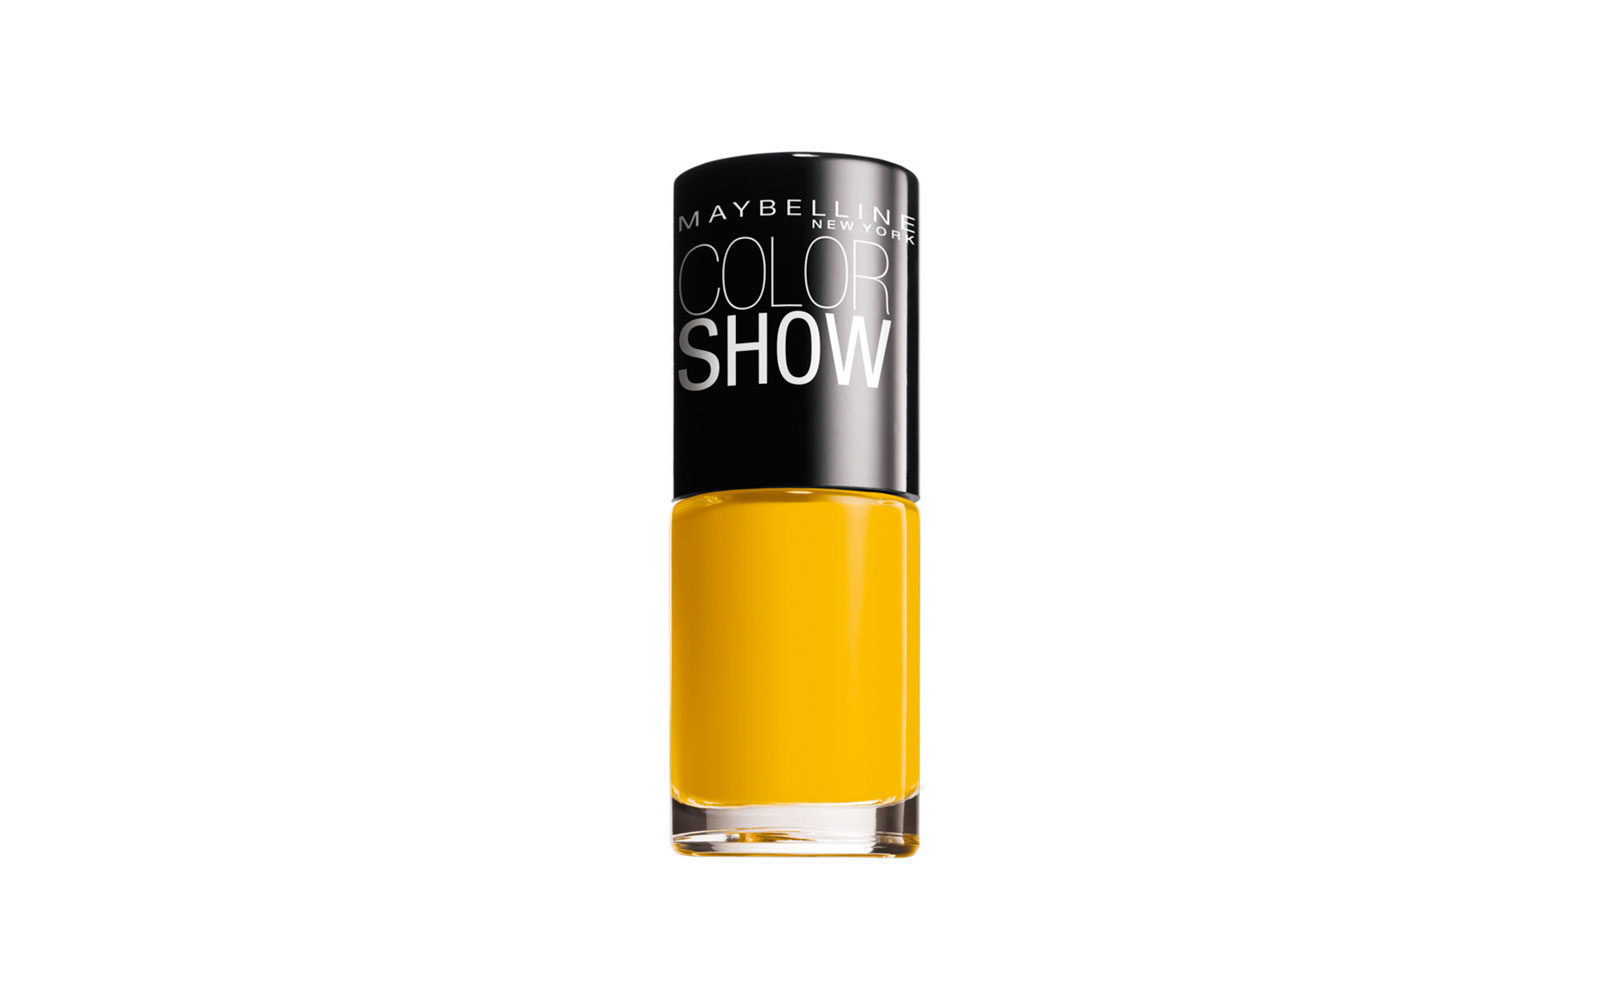 Maybelline Unghie Color Show (euro 5,50)